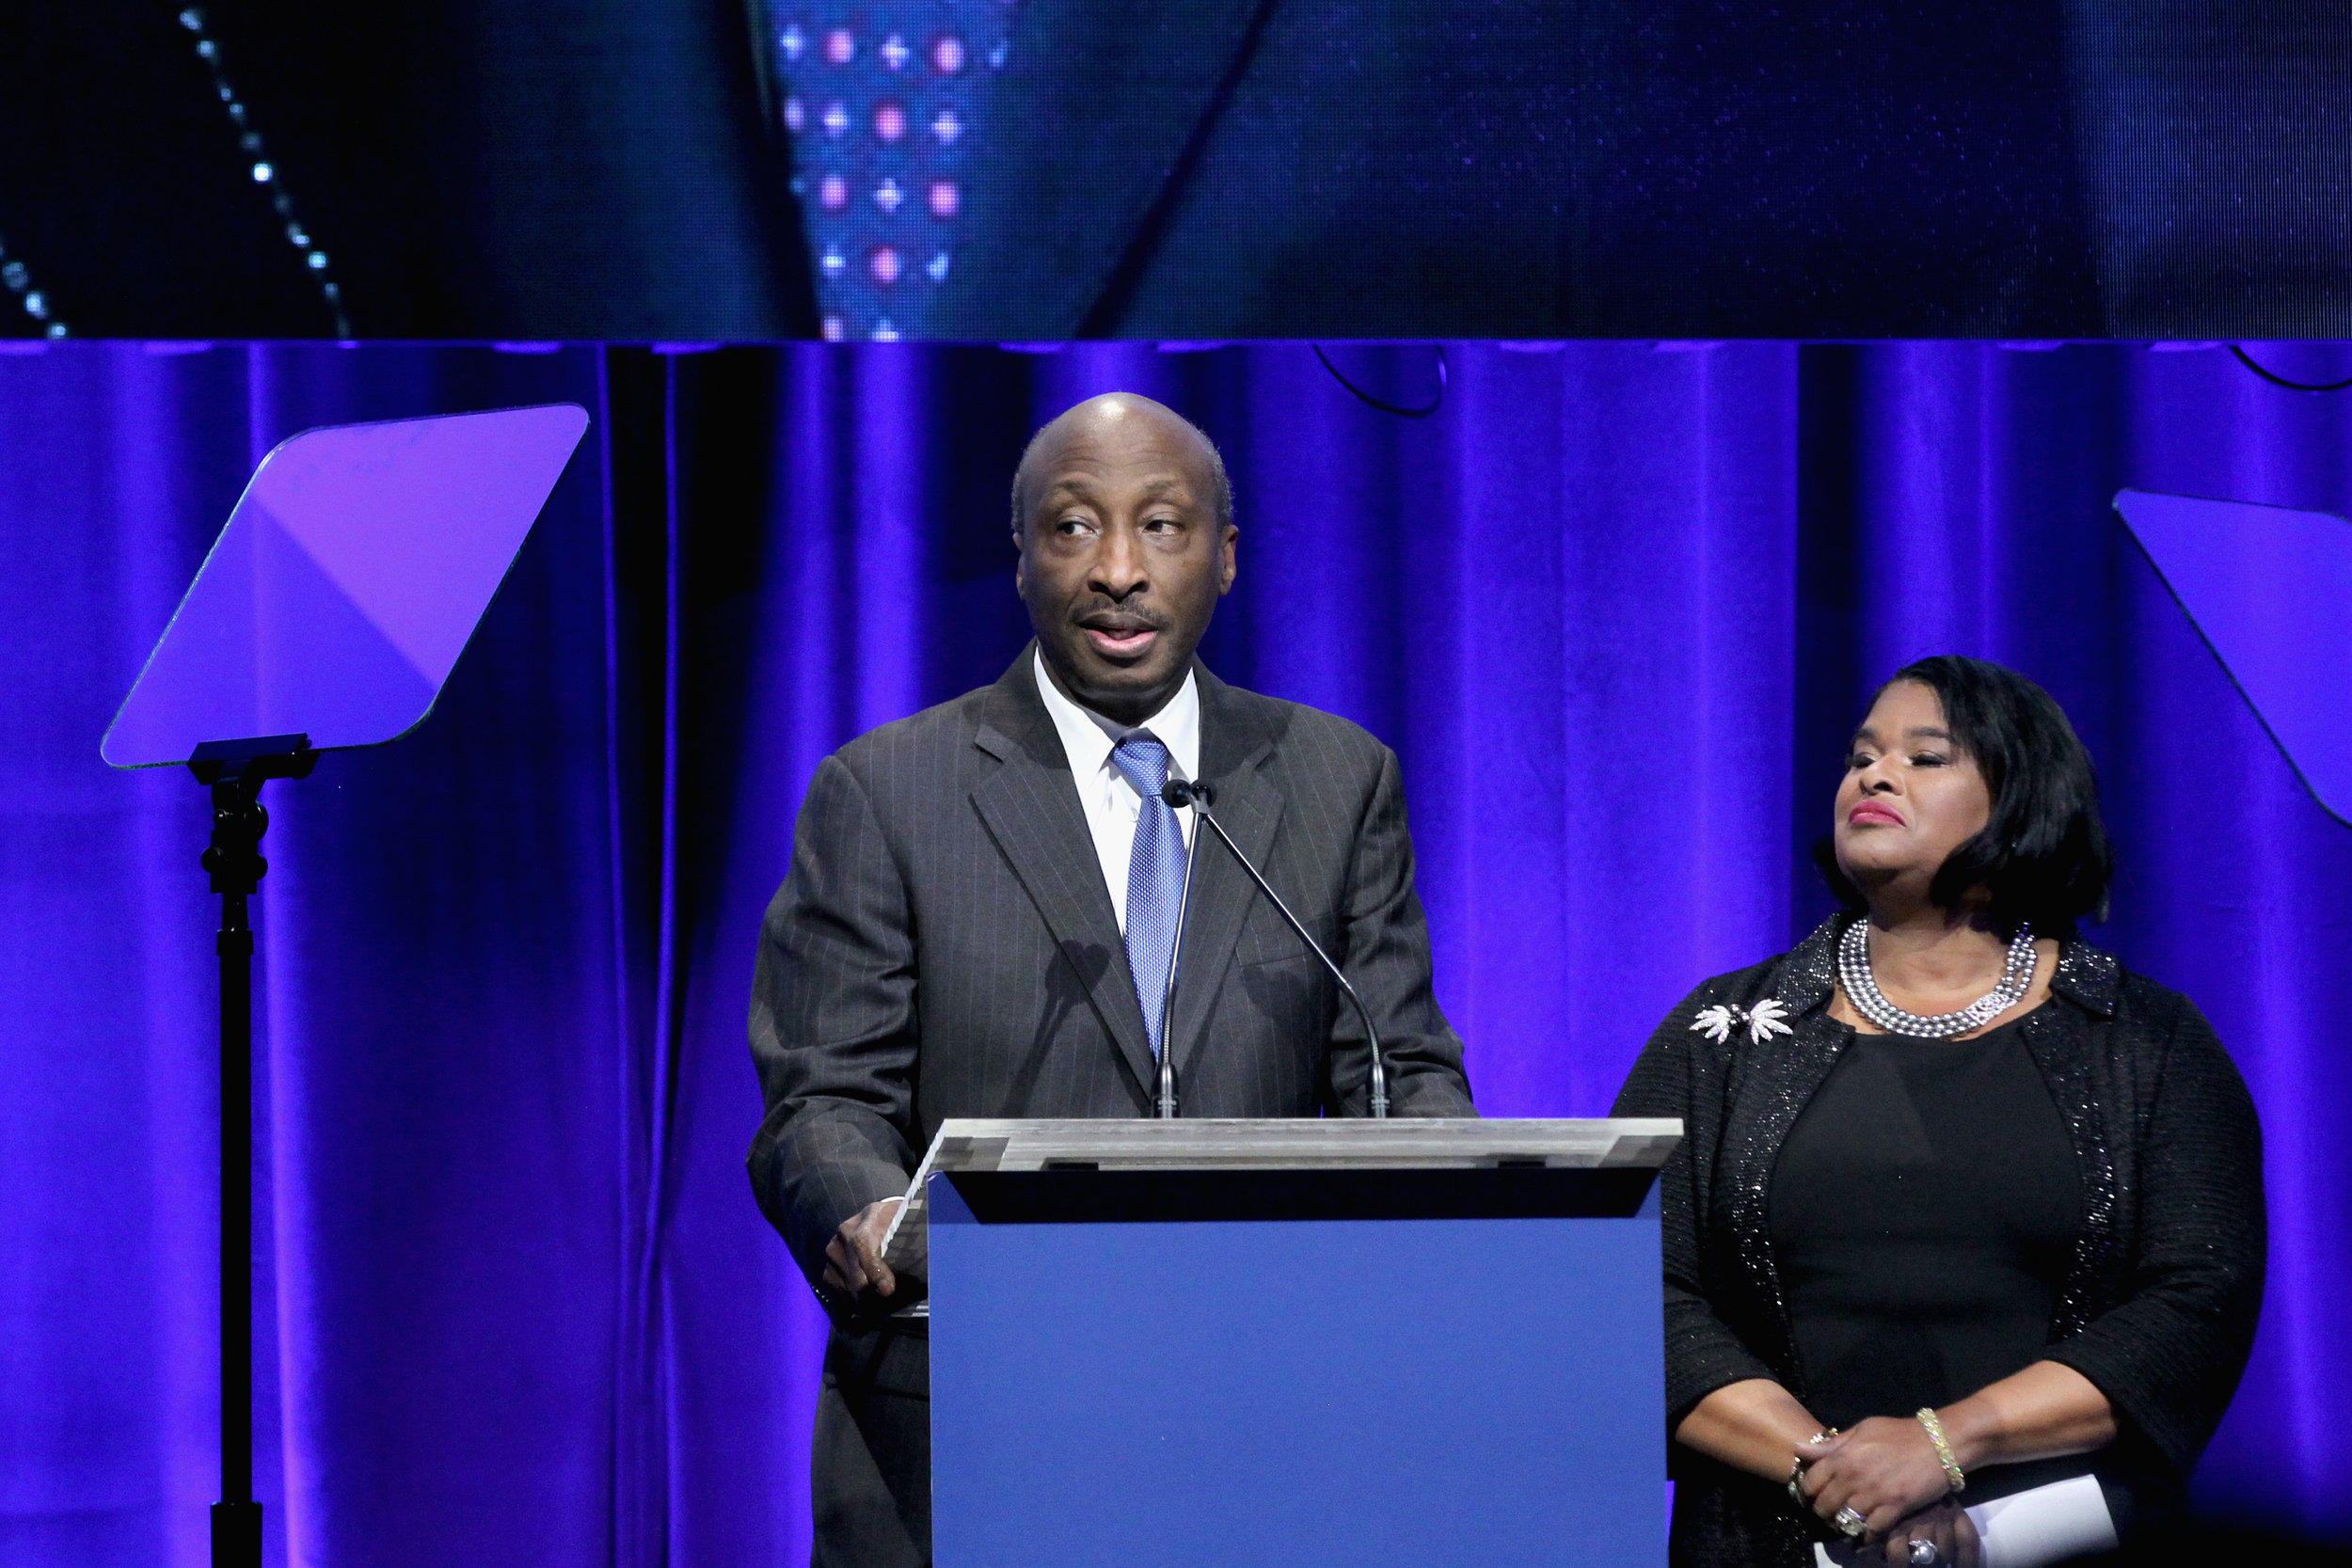 Kenneth Frazier and Robyn Coles speak onstage at the NAACP LDF 32nd National Equal Justice Awards Dinner at The Ziegfeld Ballroom on November 1, 2018 in New York City. (Photo by Bennett Raglin/Getty Images for NAACP LDF)